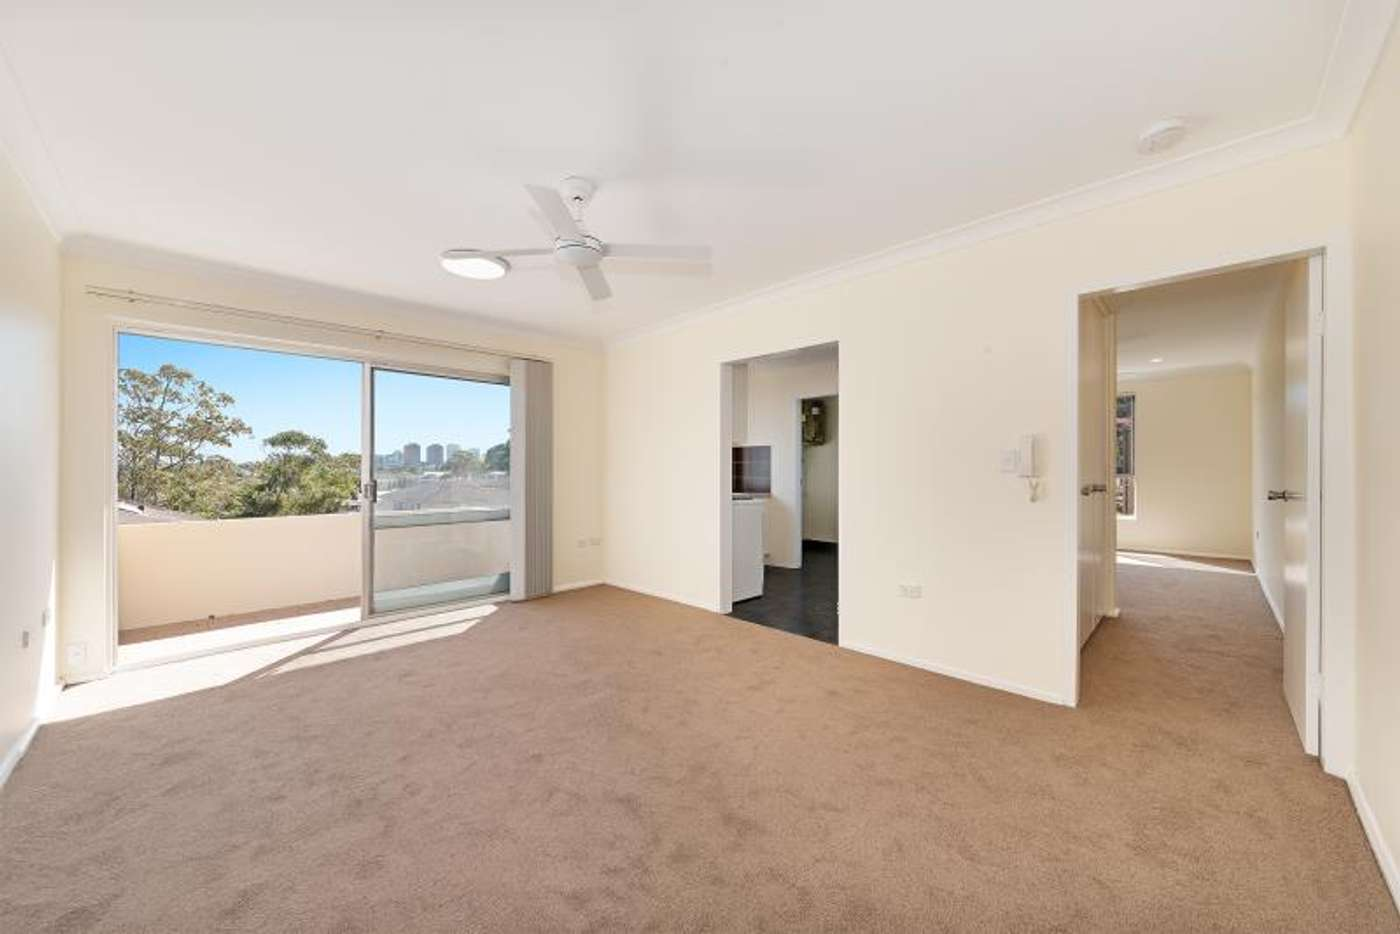 Main view of Homely apartment listing, 11/3-11 Church Street, Randwick NSW 2031